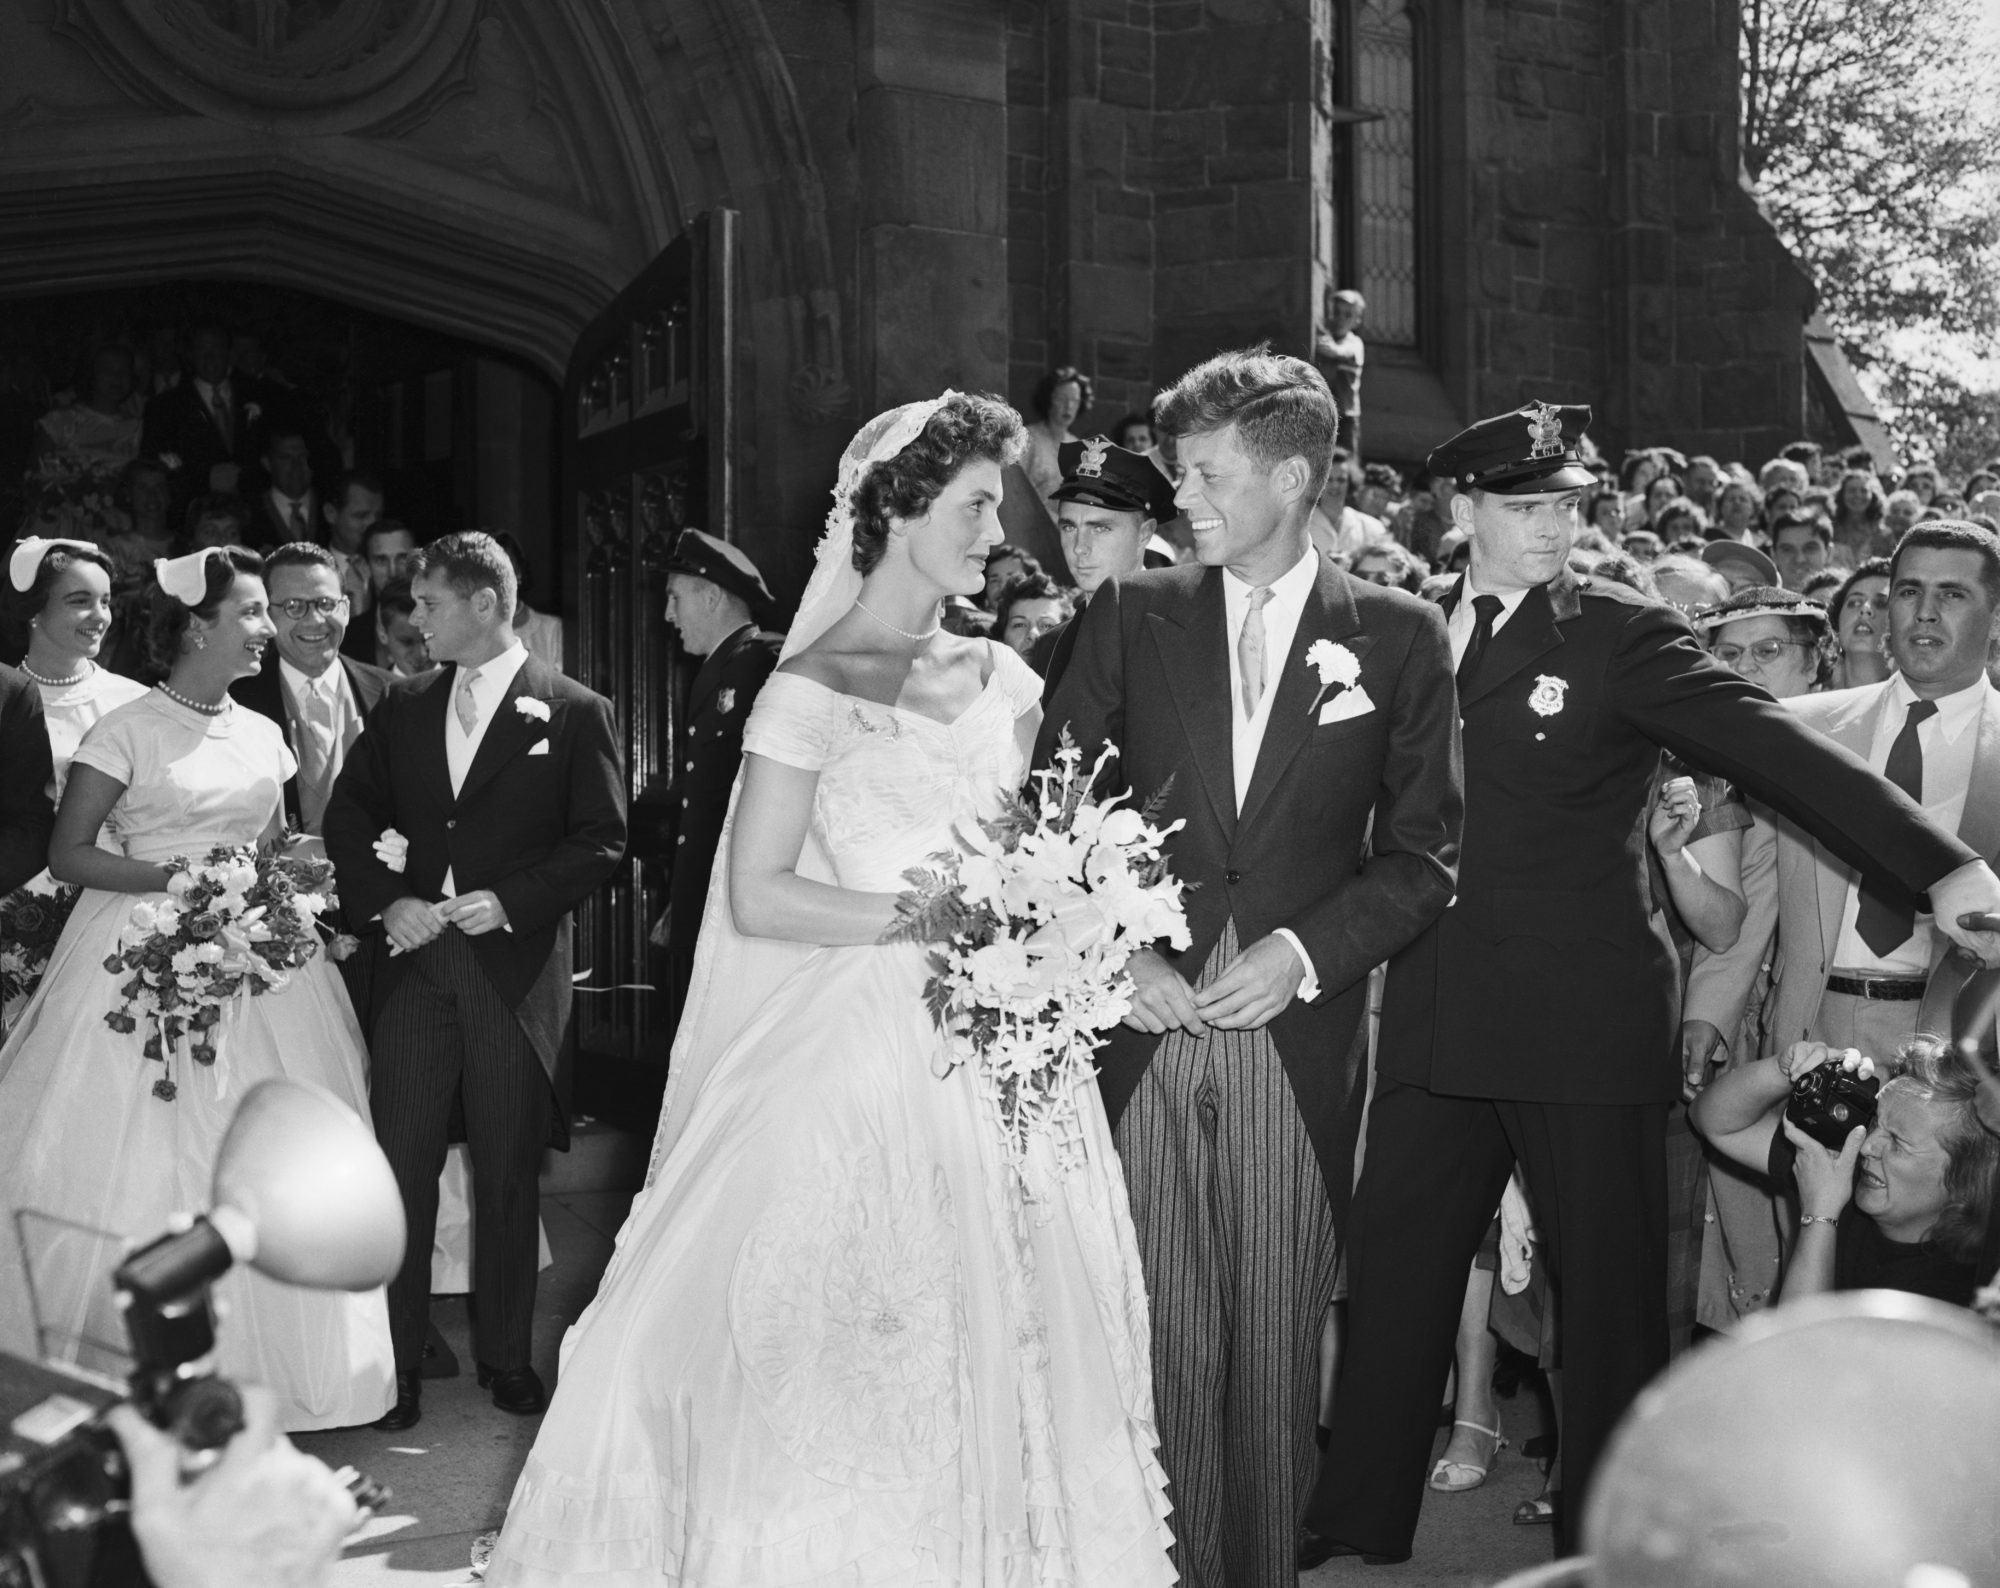 Jackie Kennedy and John F. Kennedy After Wedding Ceremony